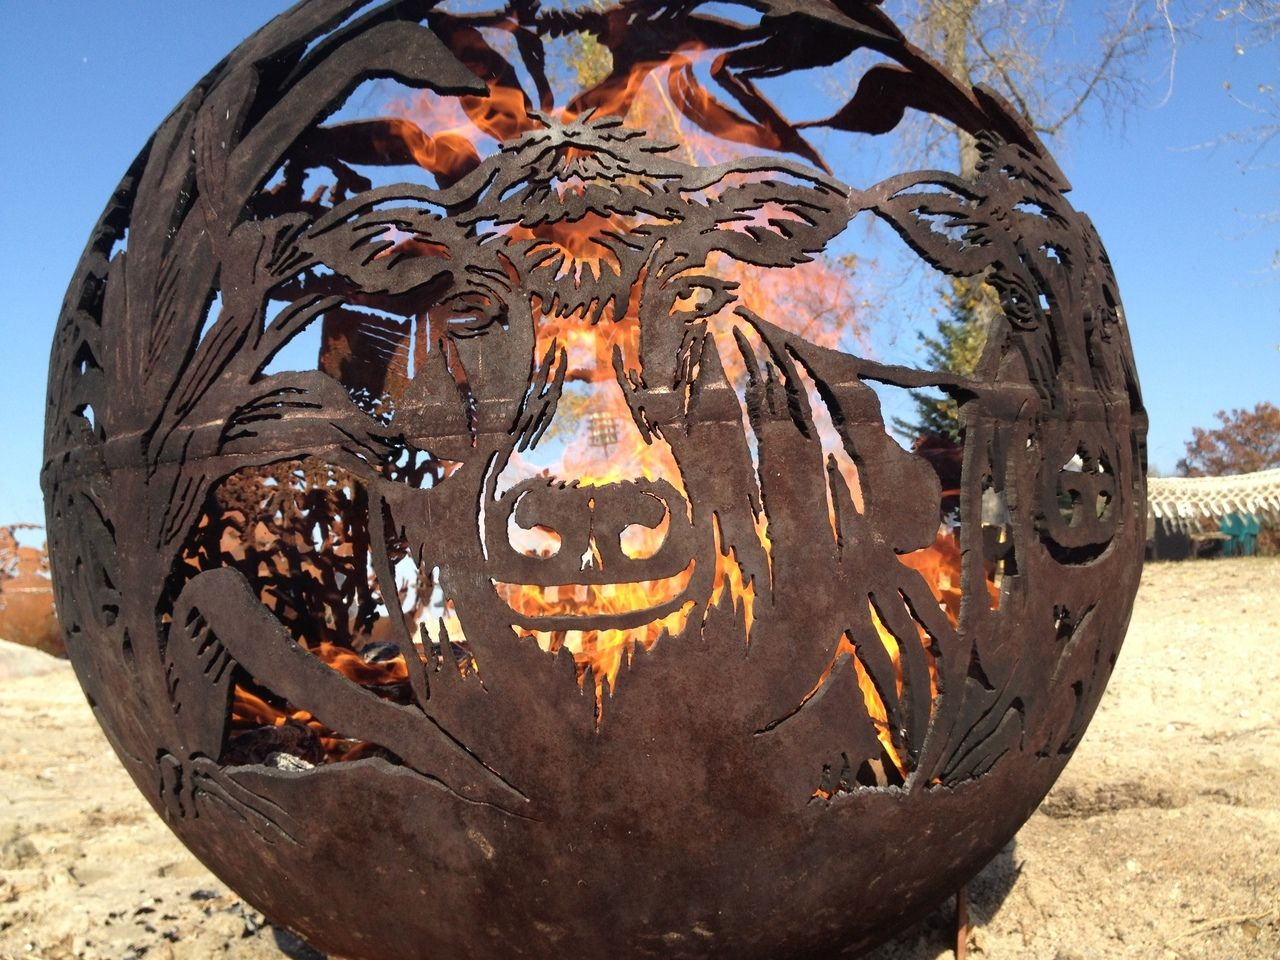 Fireball Fire Pits   Unique Handcrafted Wood Burning Steel Fire Pits.  Creative Handmade Artistic Expressions